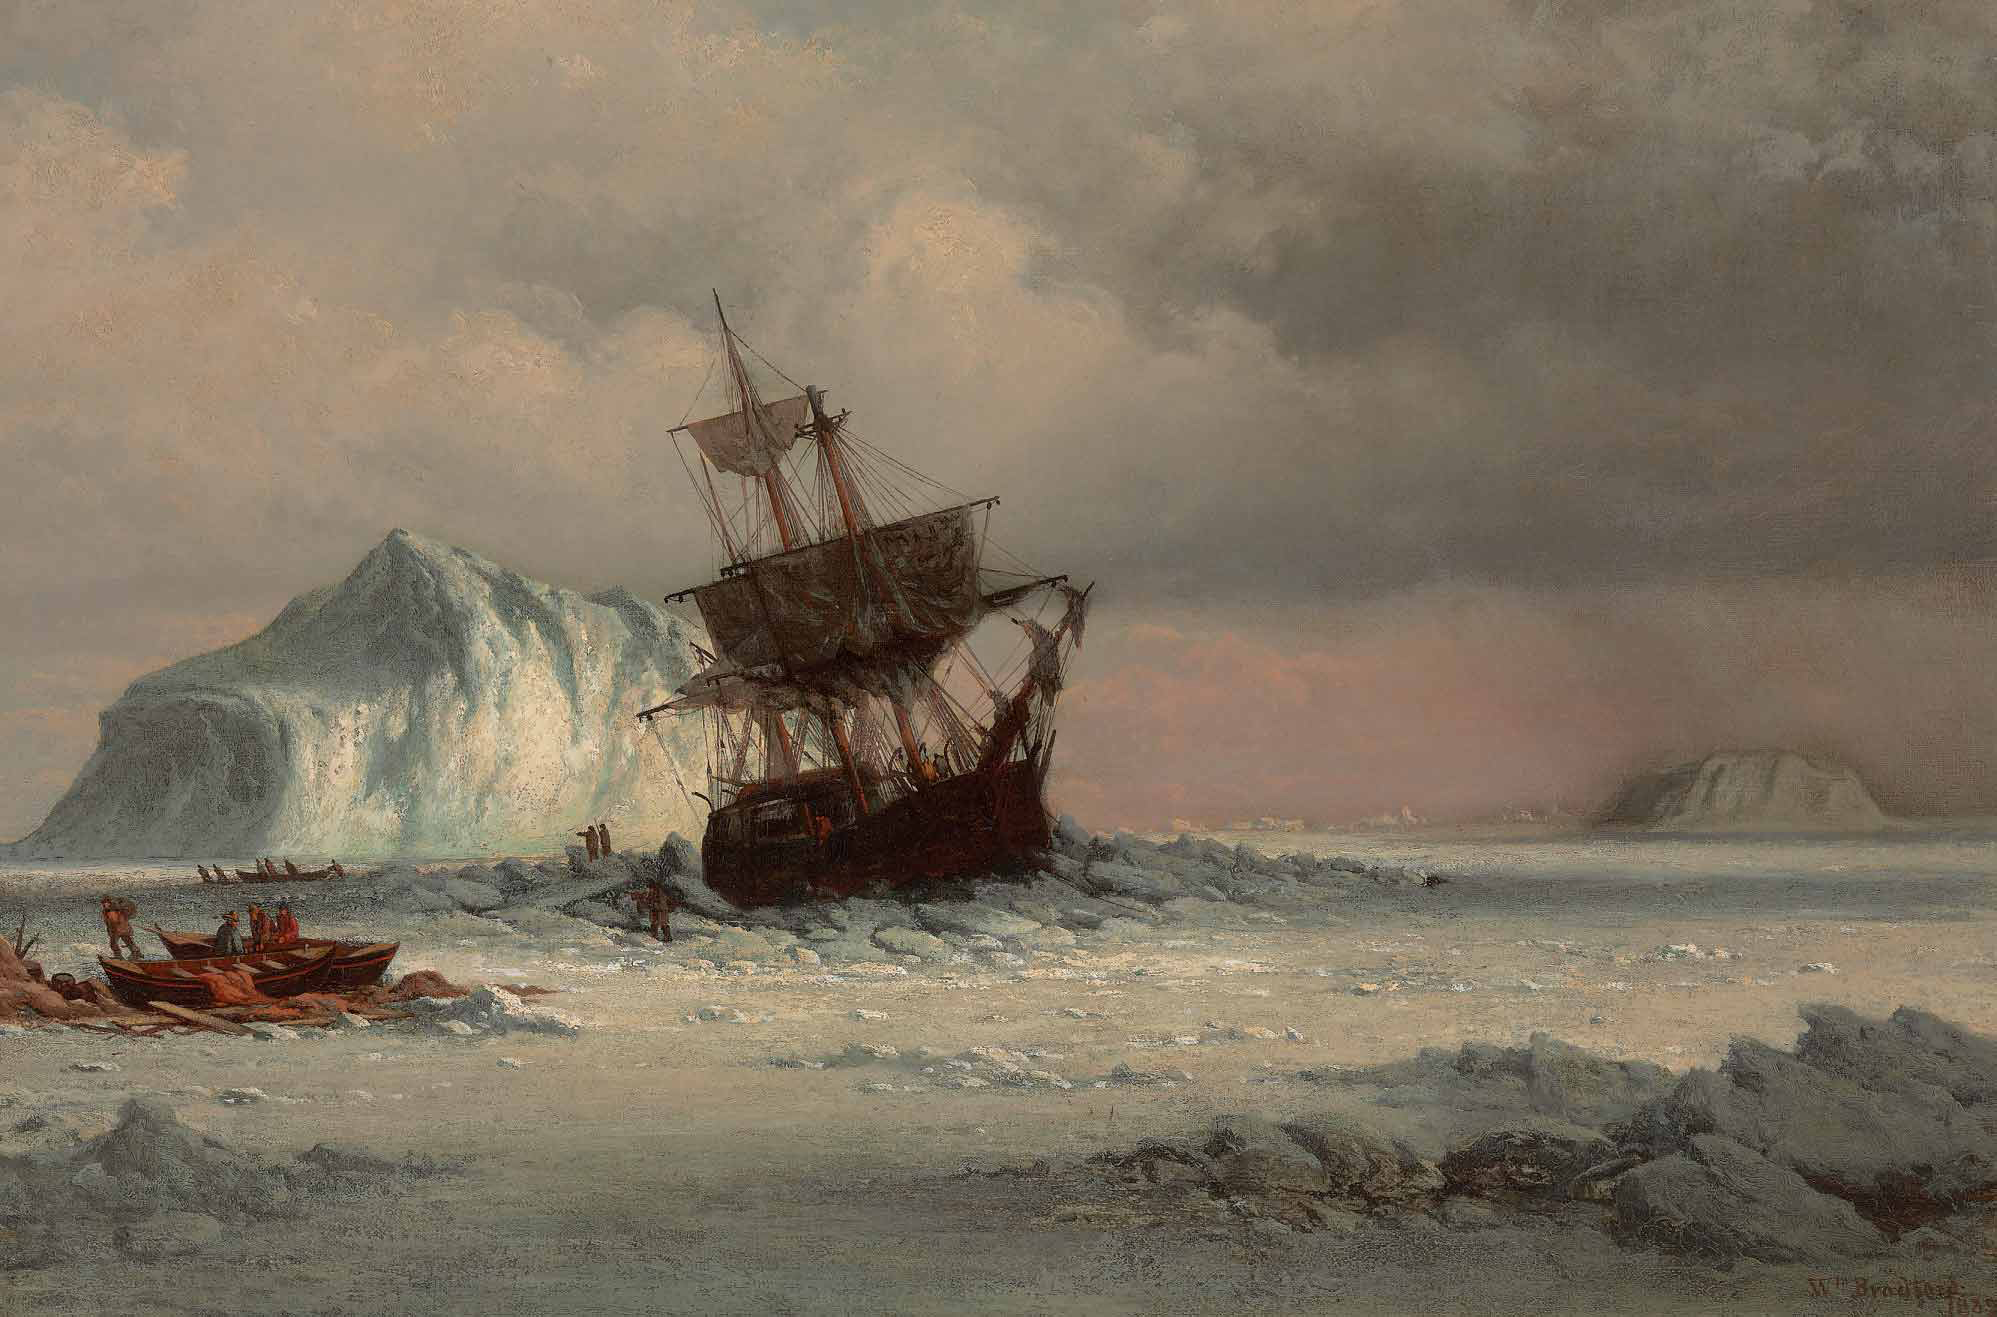 Caught in the Ice Floes